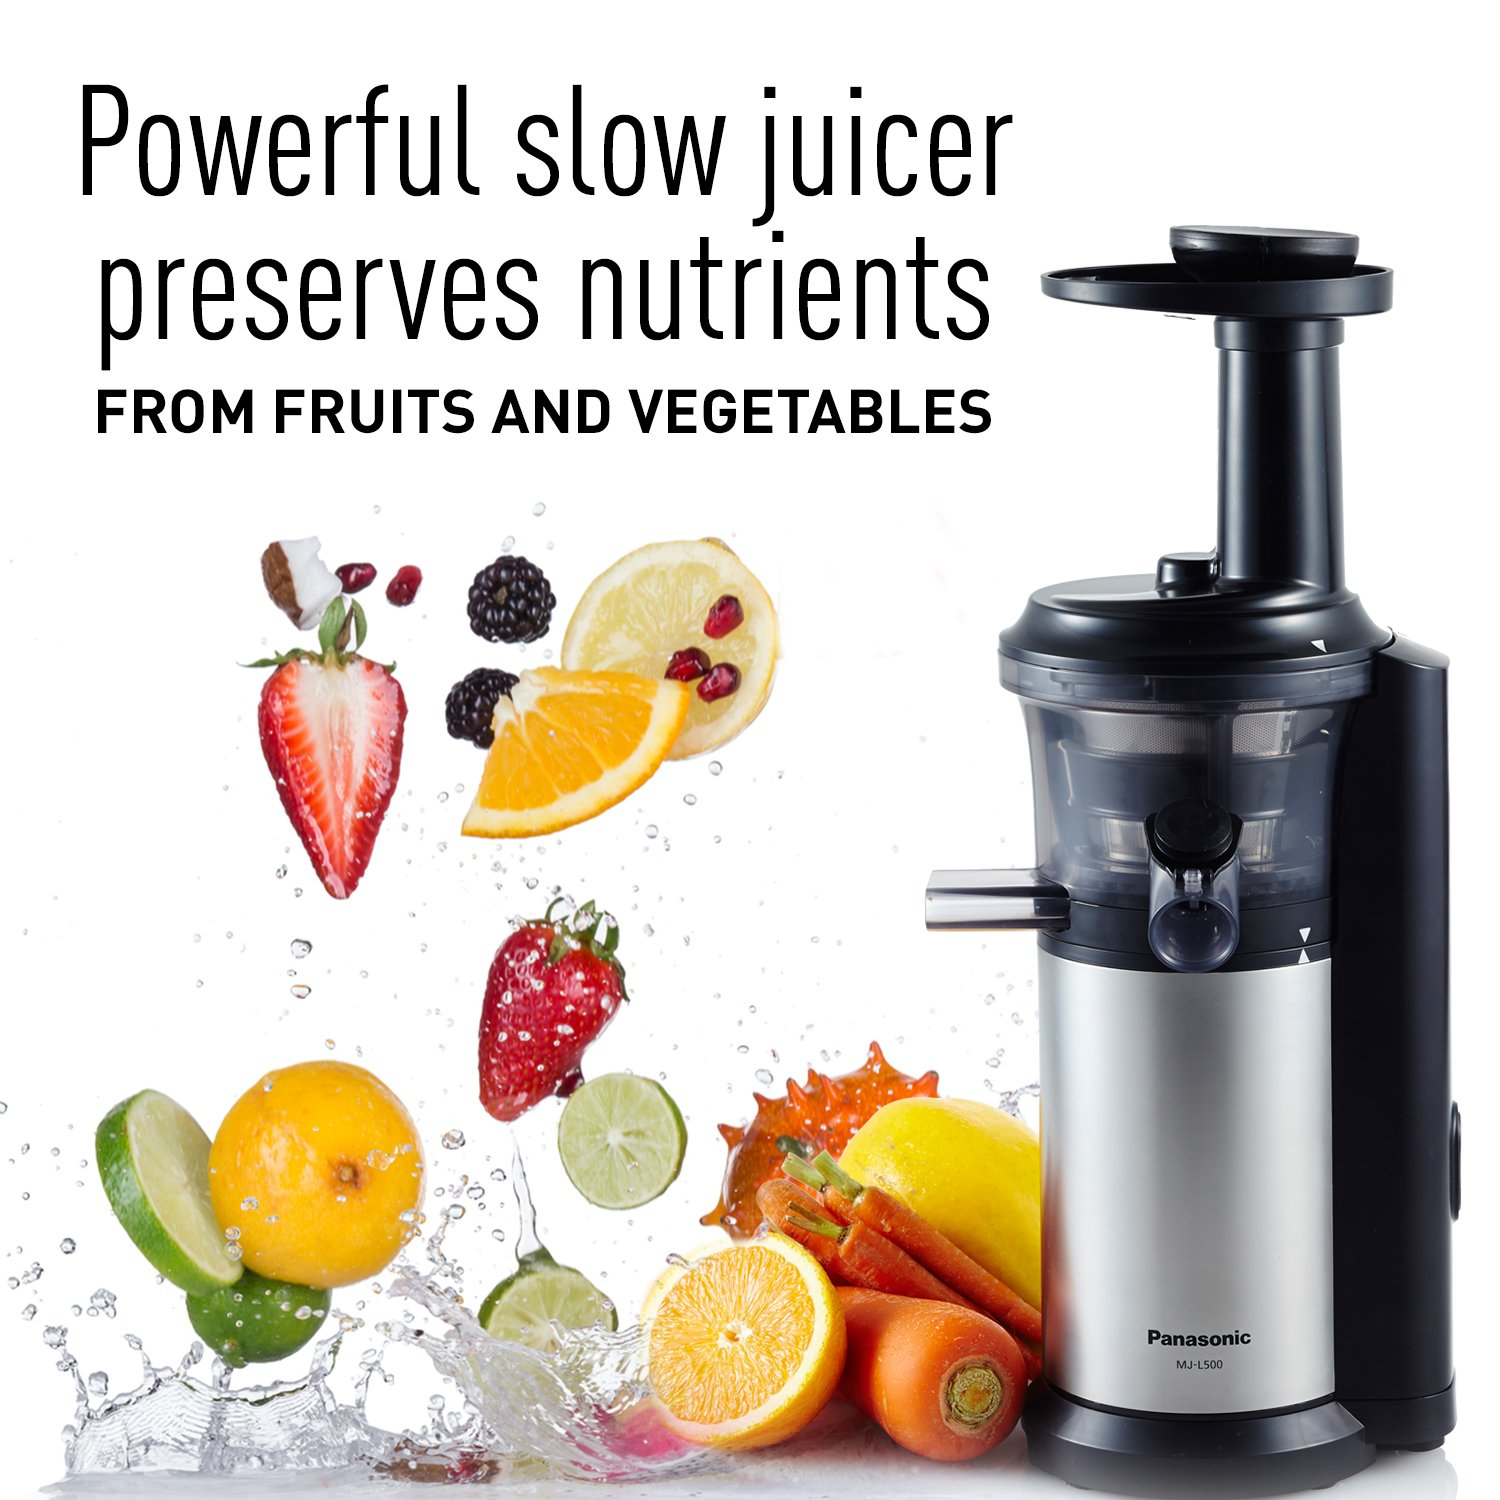 Primada Slow Juicer Review : Slow Juicer Reviews. Hurom Slow Juicer. Juices. . Kuvings Nje3580u Masticating Slow Juicer ...